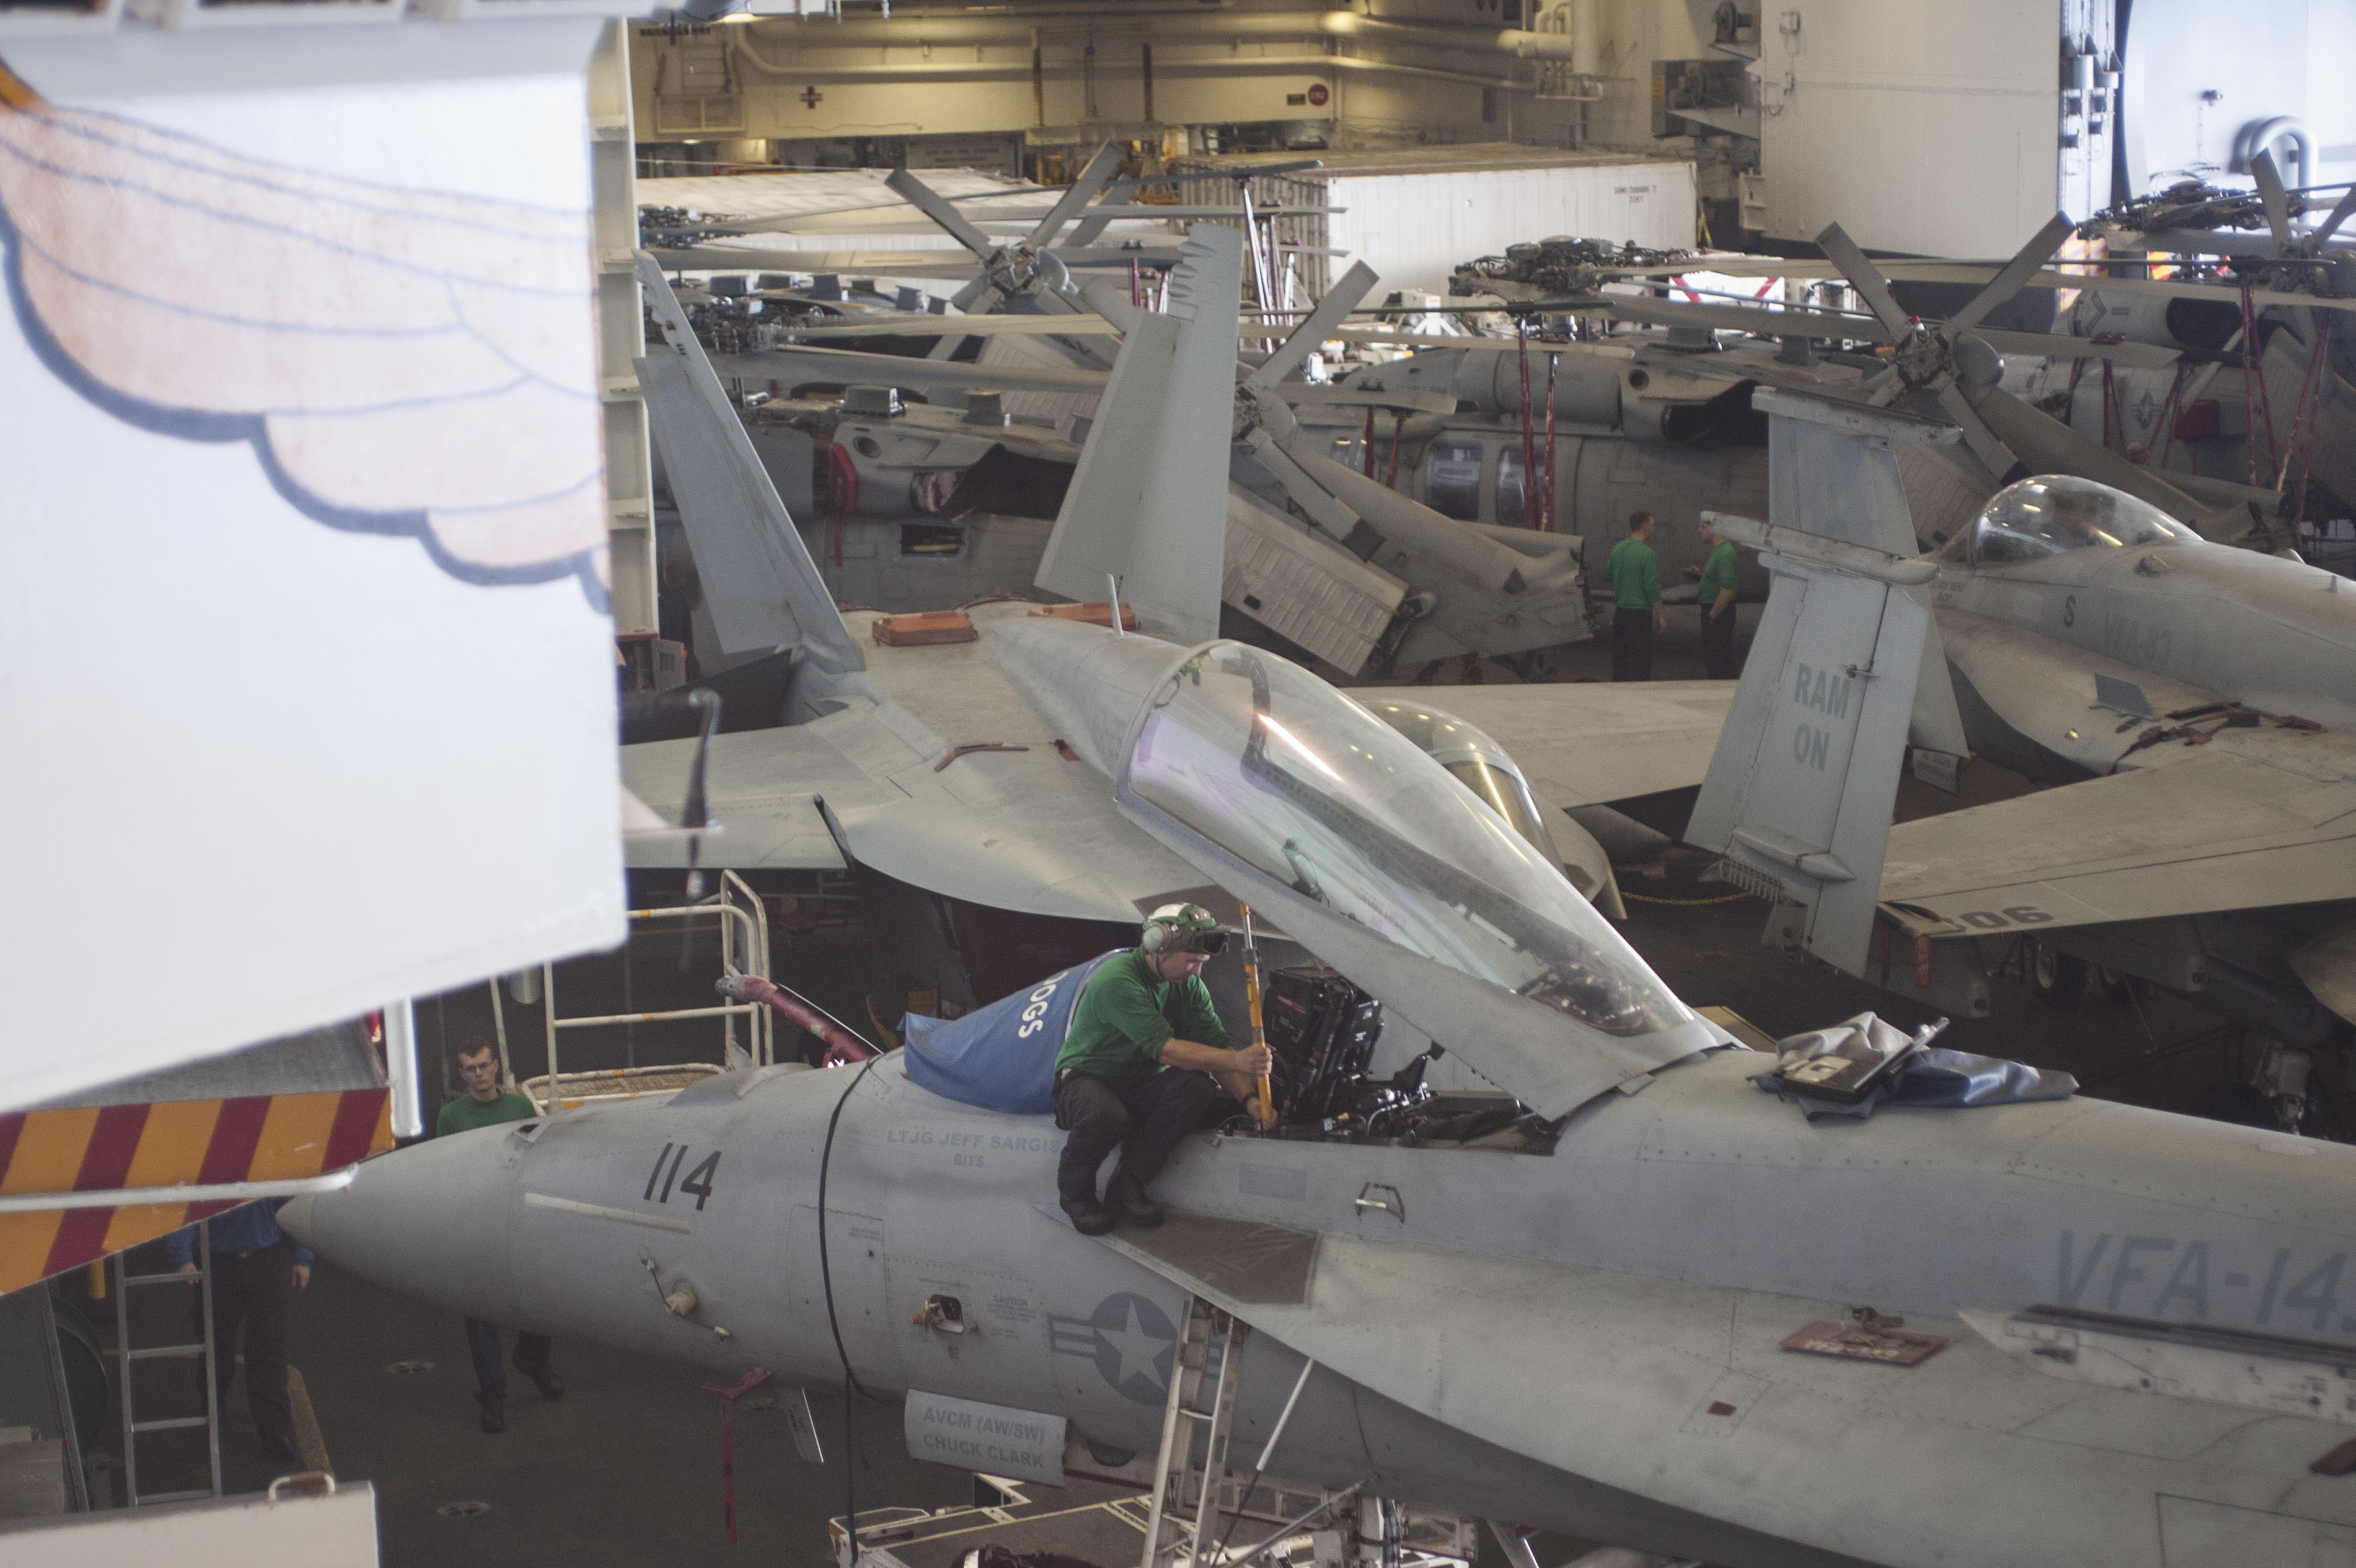 Aviation Structural Mechanic (Equipment) 2nd Class M. V. Volosko, assigned to the Pukin Dogs of Strike Fighter Squadron (VFA) 143, places a canopy brace on an F/A-18E Super Hornet in the hangar bay of the aircraft carrier USS Harry S. Truman (CVN 75) on June 17, 2015. US Navy photo.